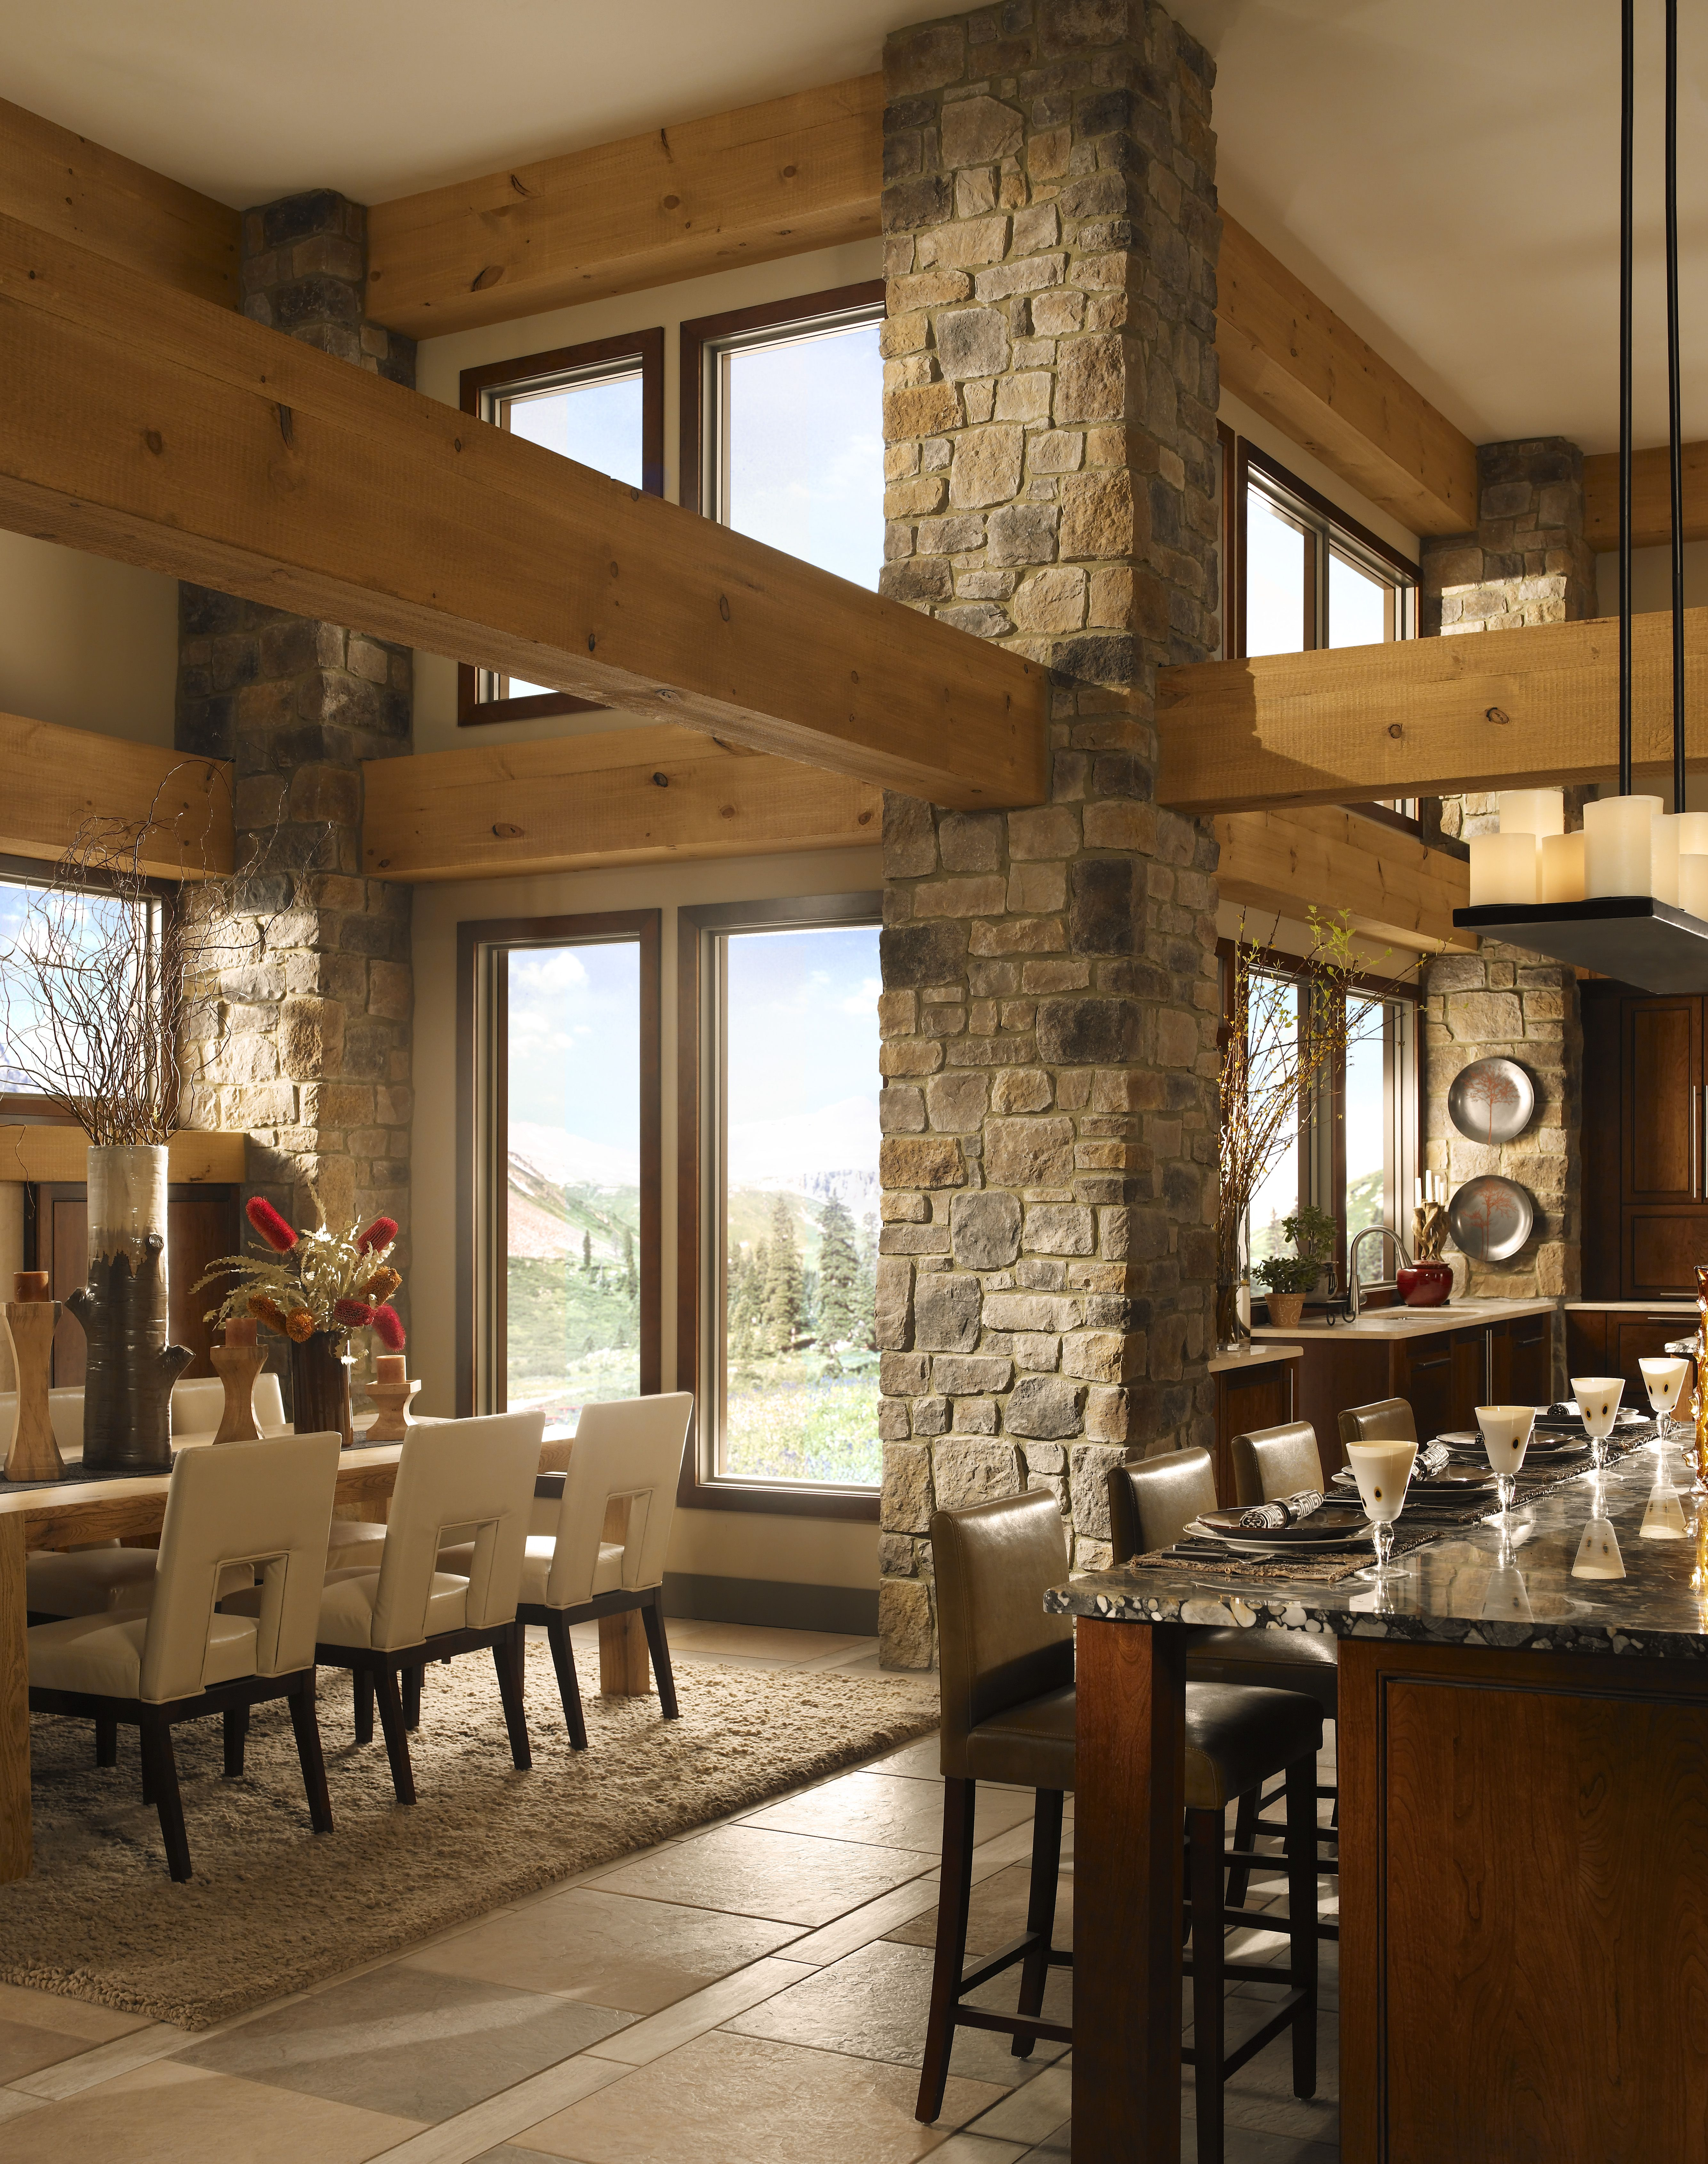 Rustic Dining Room With Stone Pillars And Wood Beams